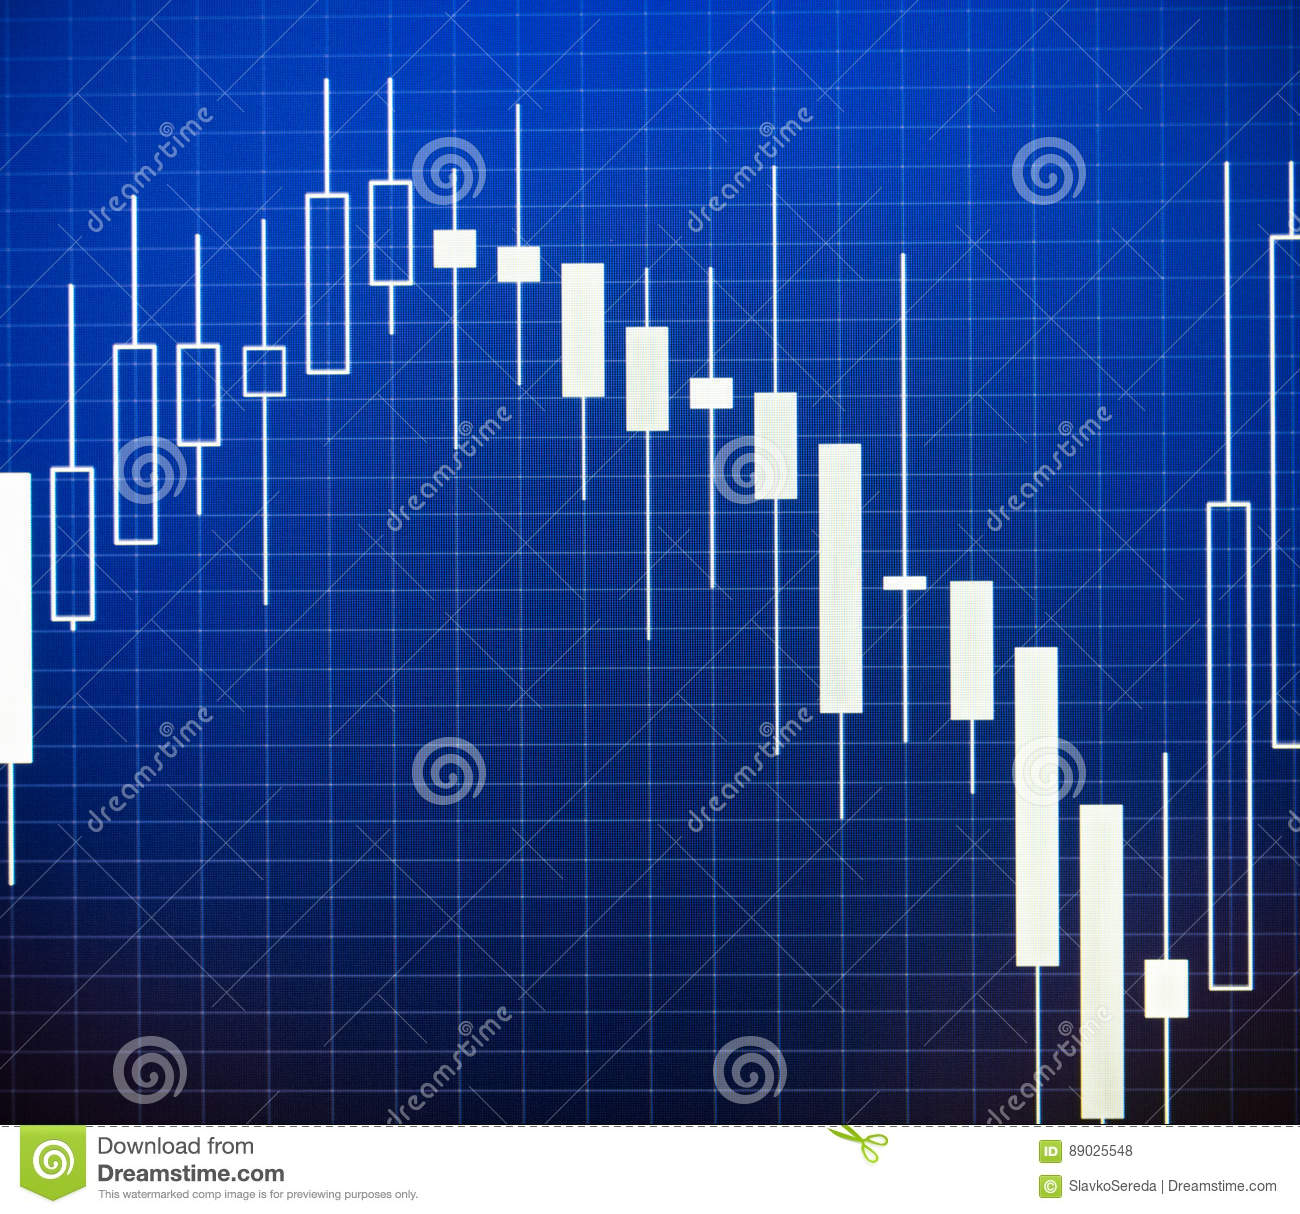 Analyzing Quotes Data Analyzing In Forex Market The Charts And Quotes On Display